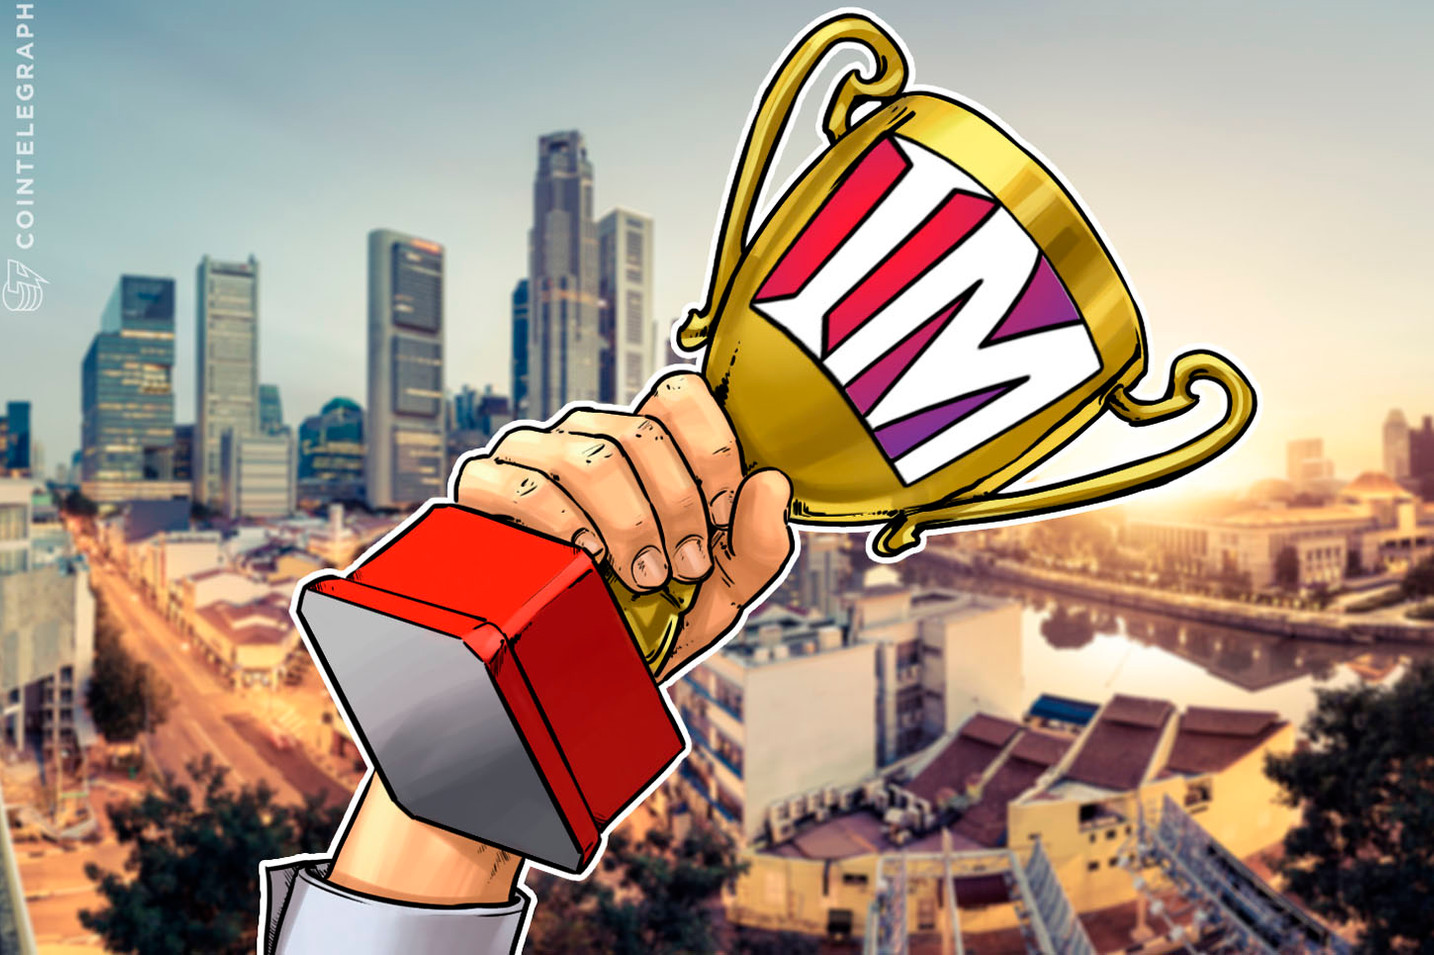 Singapore Media Regulator Launches 'Blockchain Challenge' To Promote Adoption, Innovation